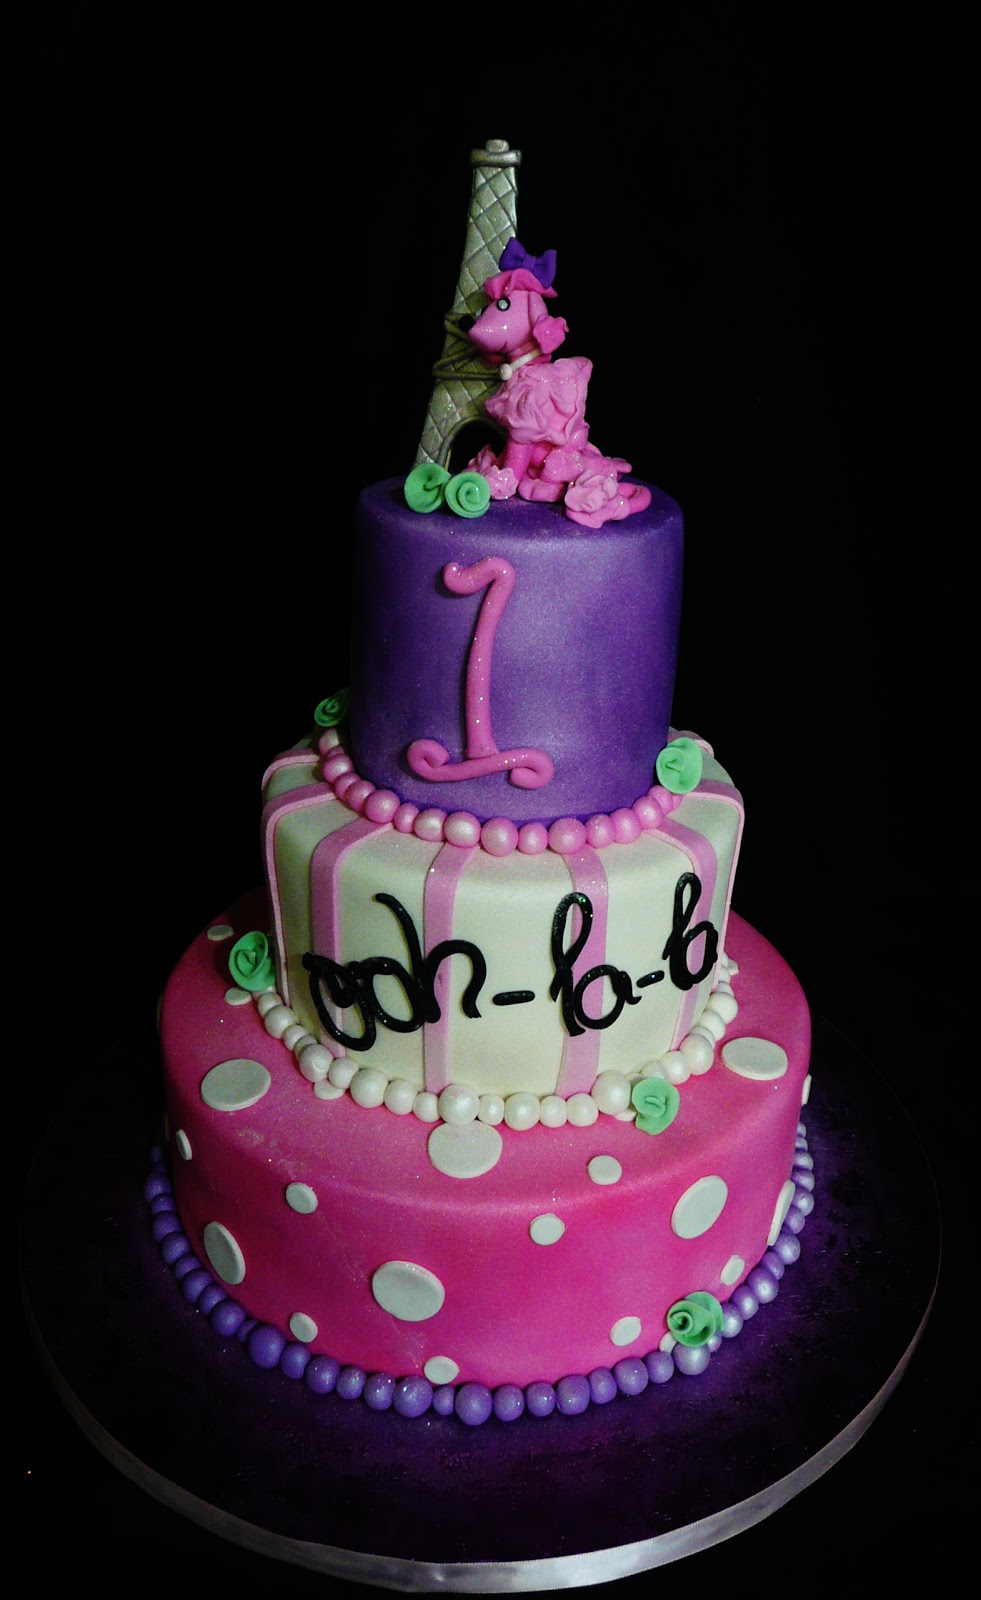 I Need Ideas For Decorating My Living Room: Baking With Roxana's Cakes: Pink Poodle In Paris Themed Cake